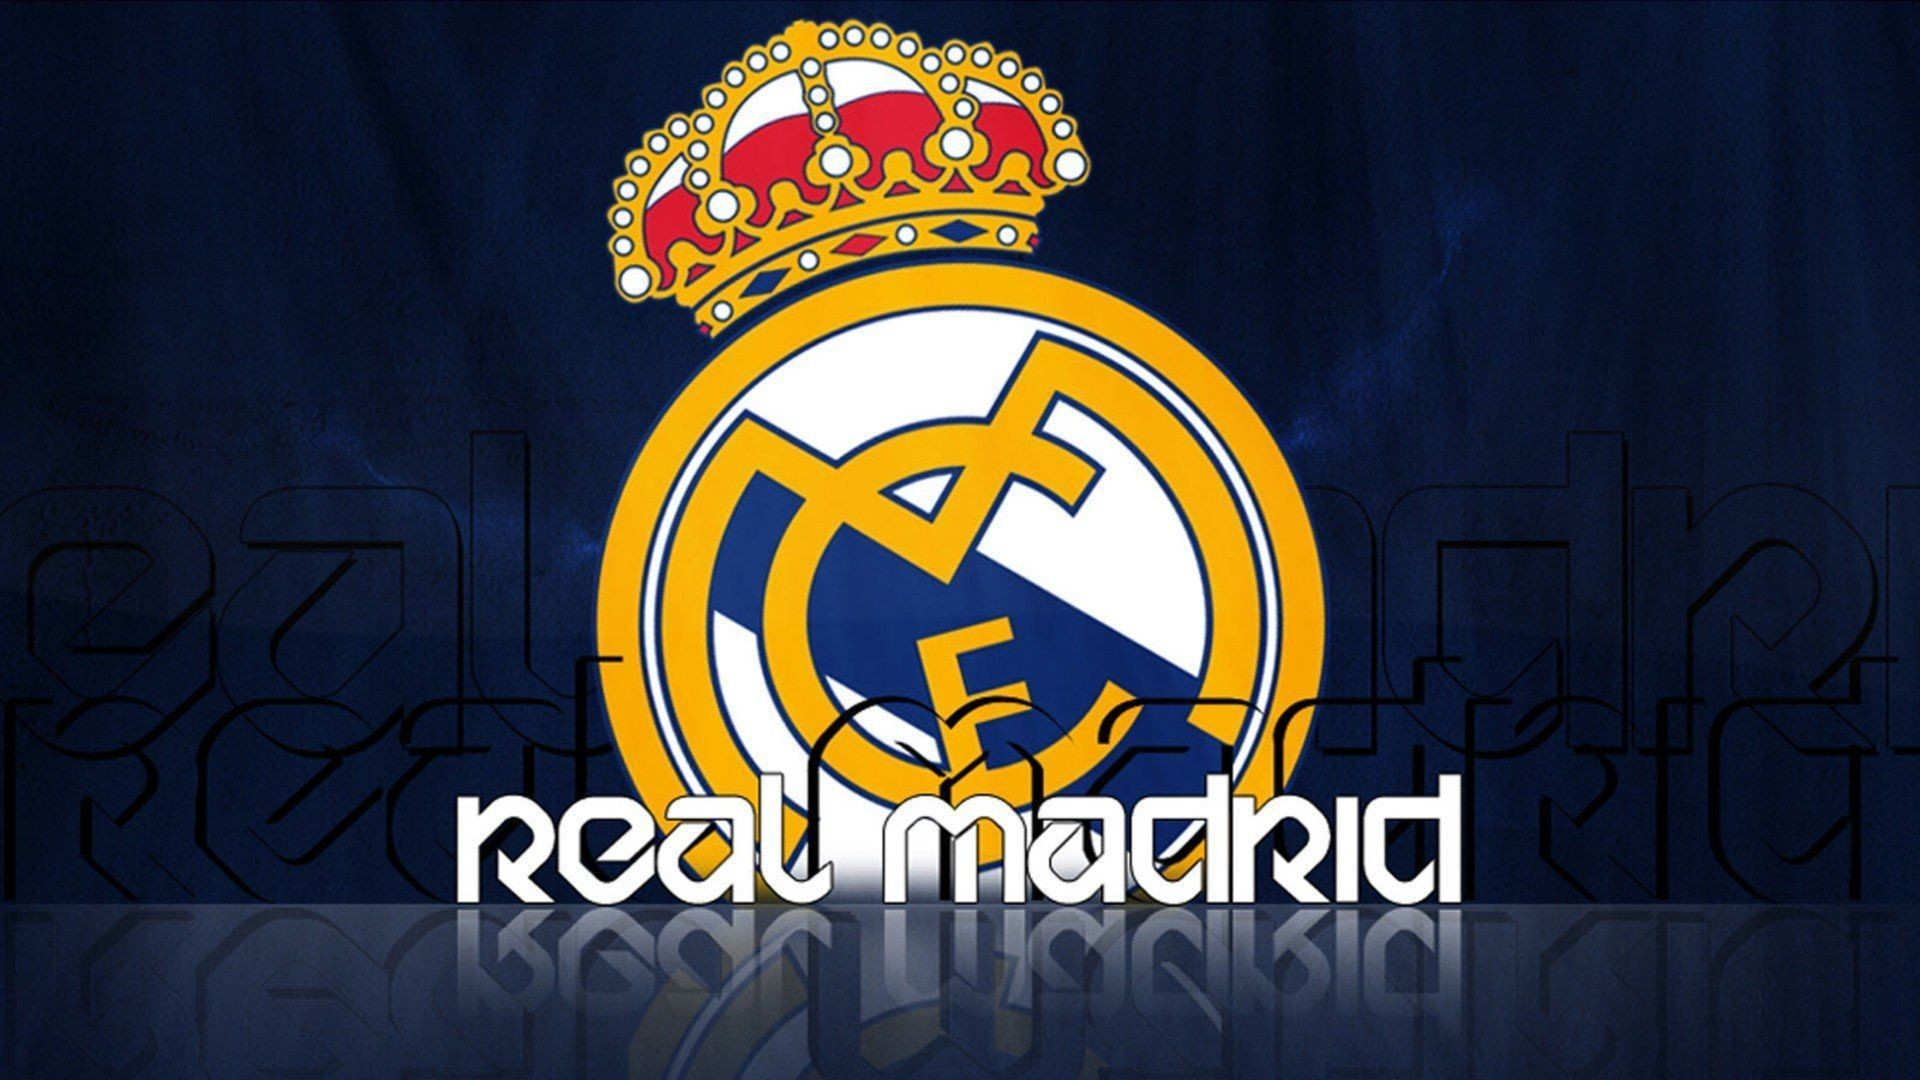 1920x1080 Sports soccer Real Madrid football teams Football Logos wallpaper .